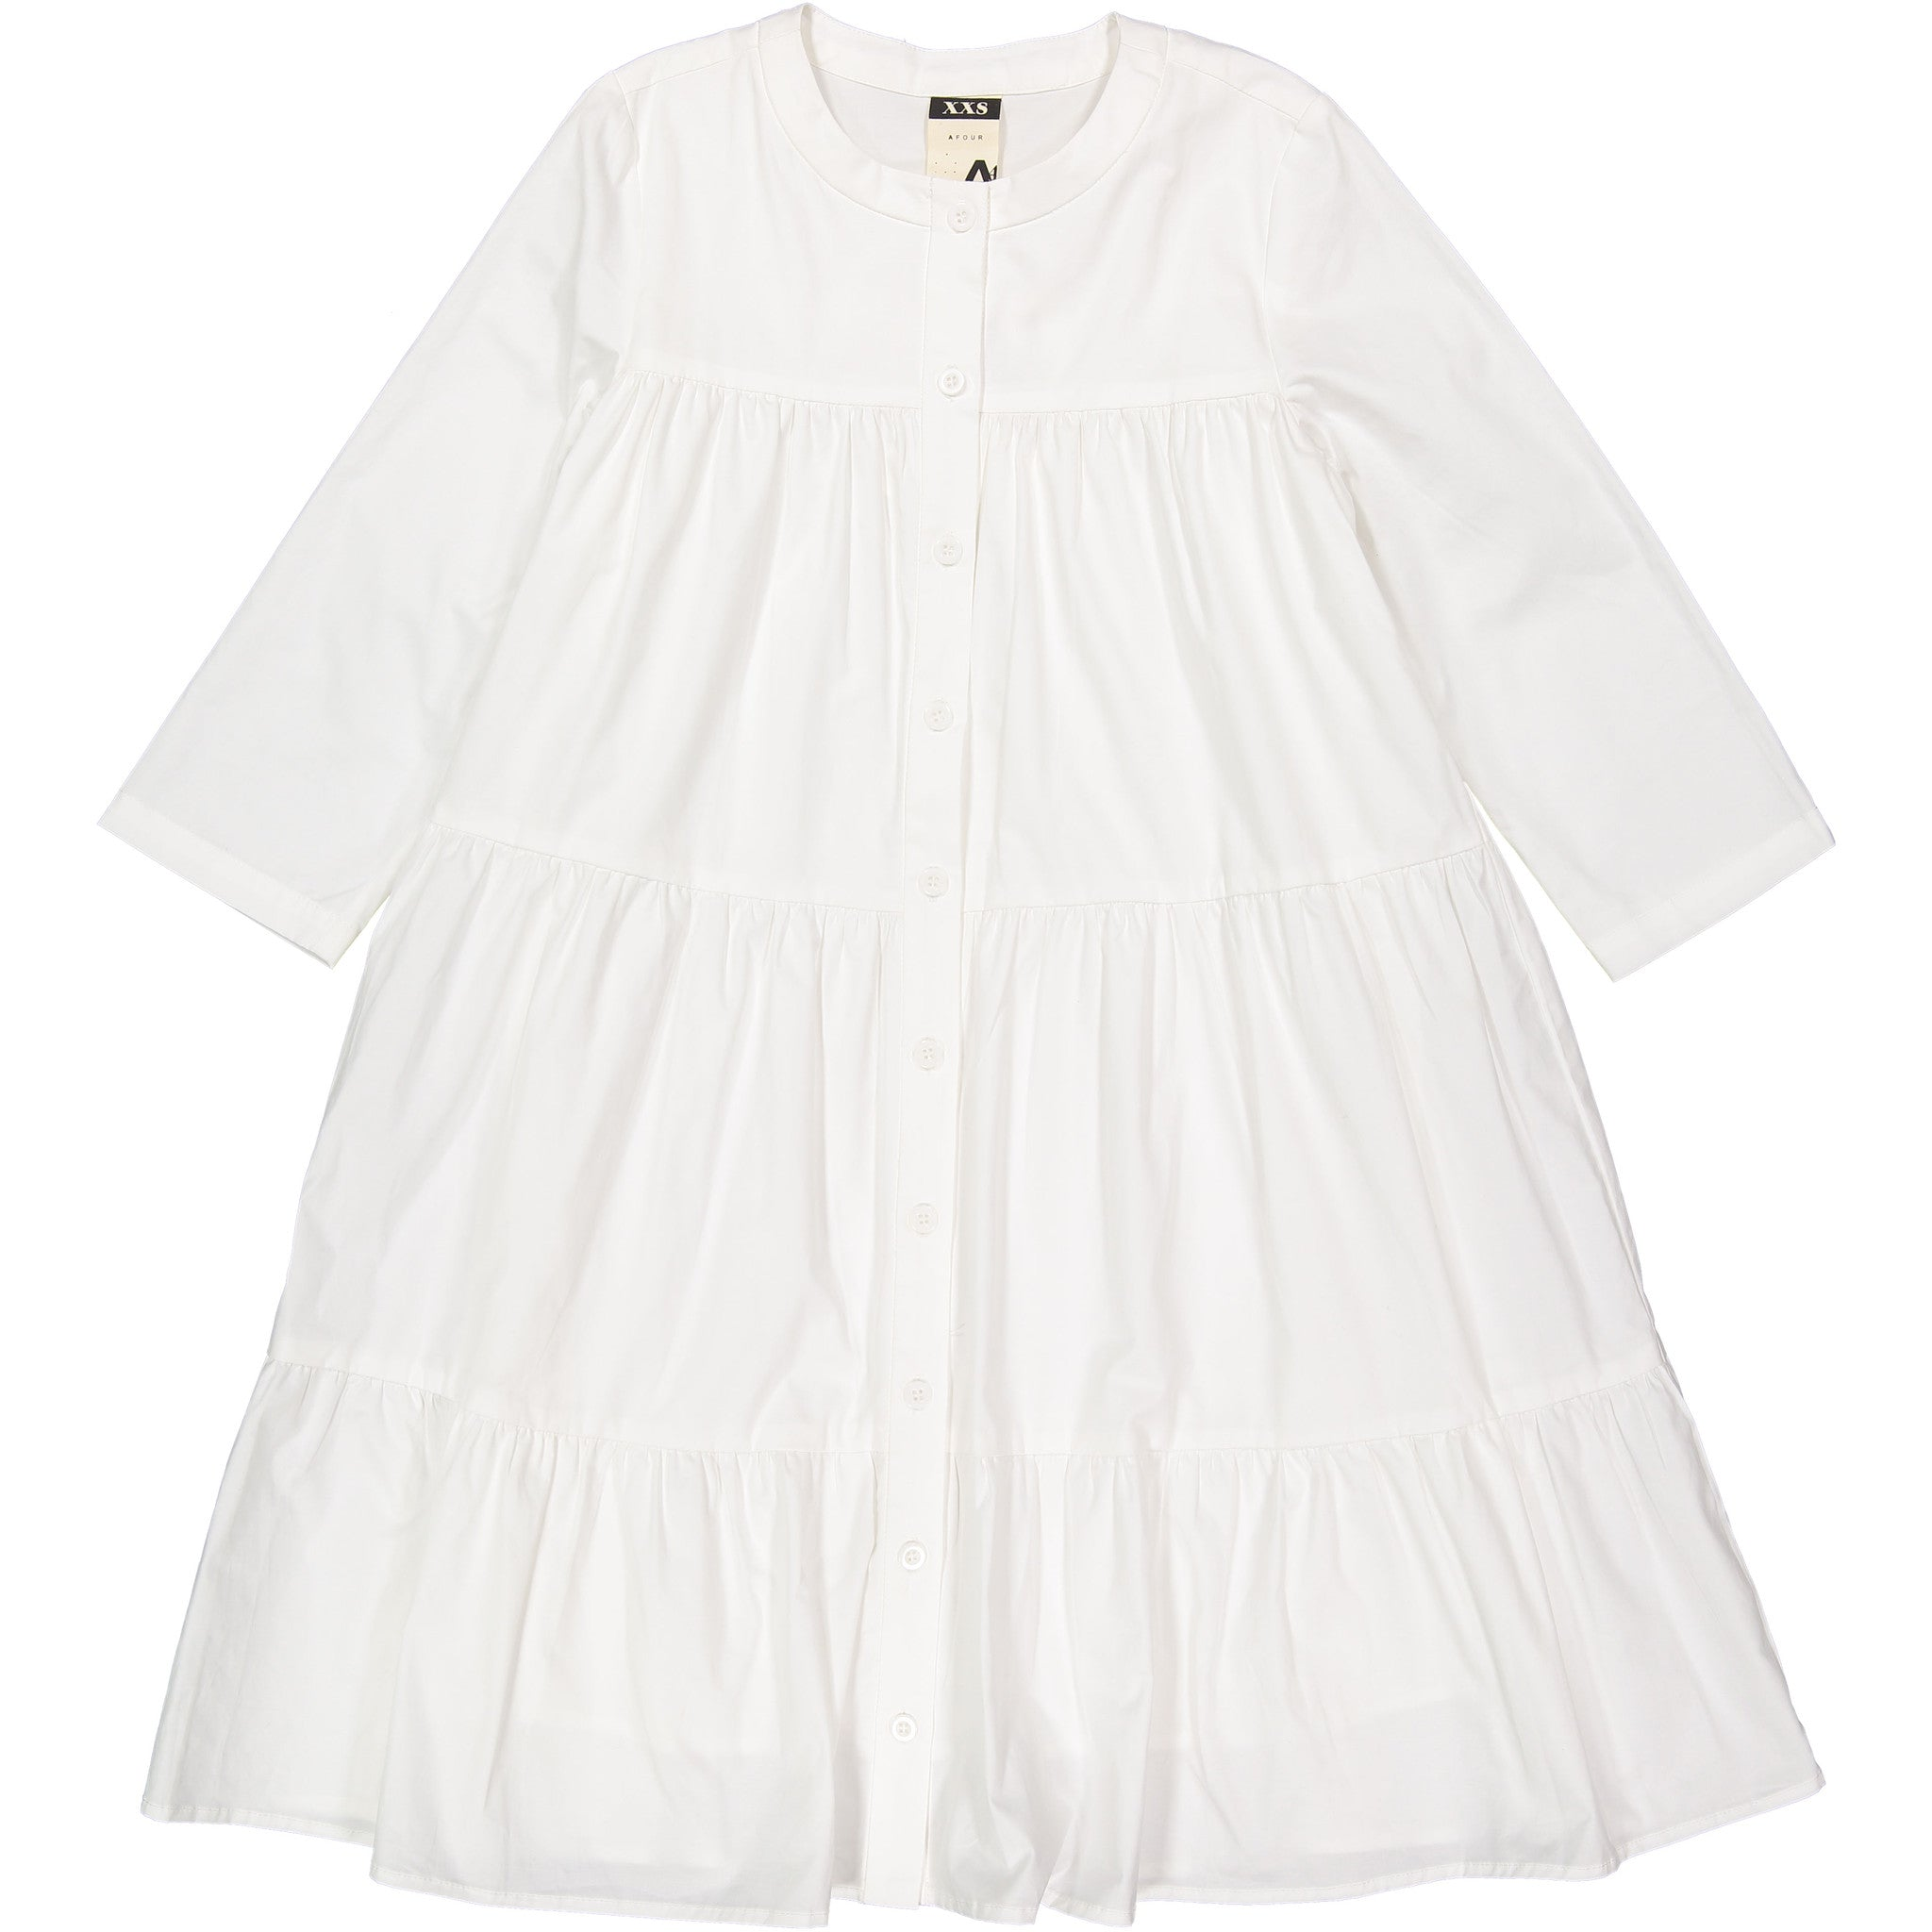 A4 White Tiered Long Sleeve Dress - Ladida